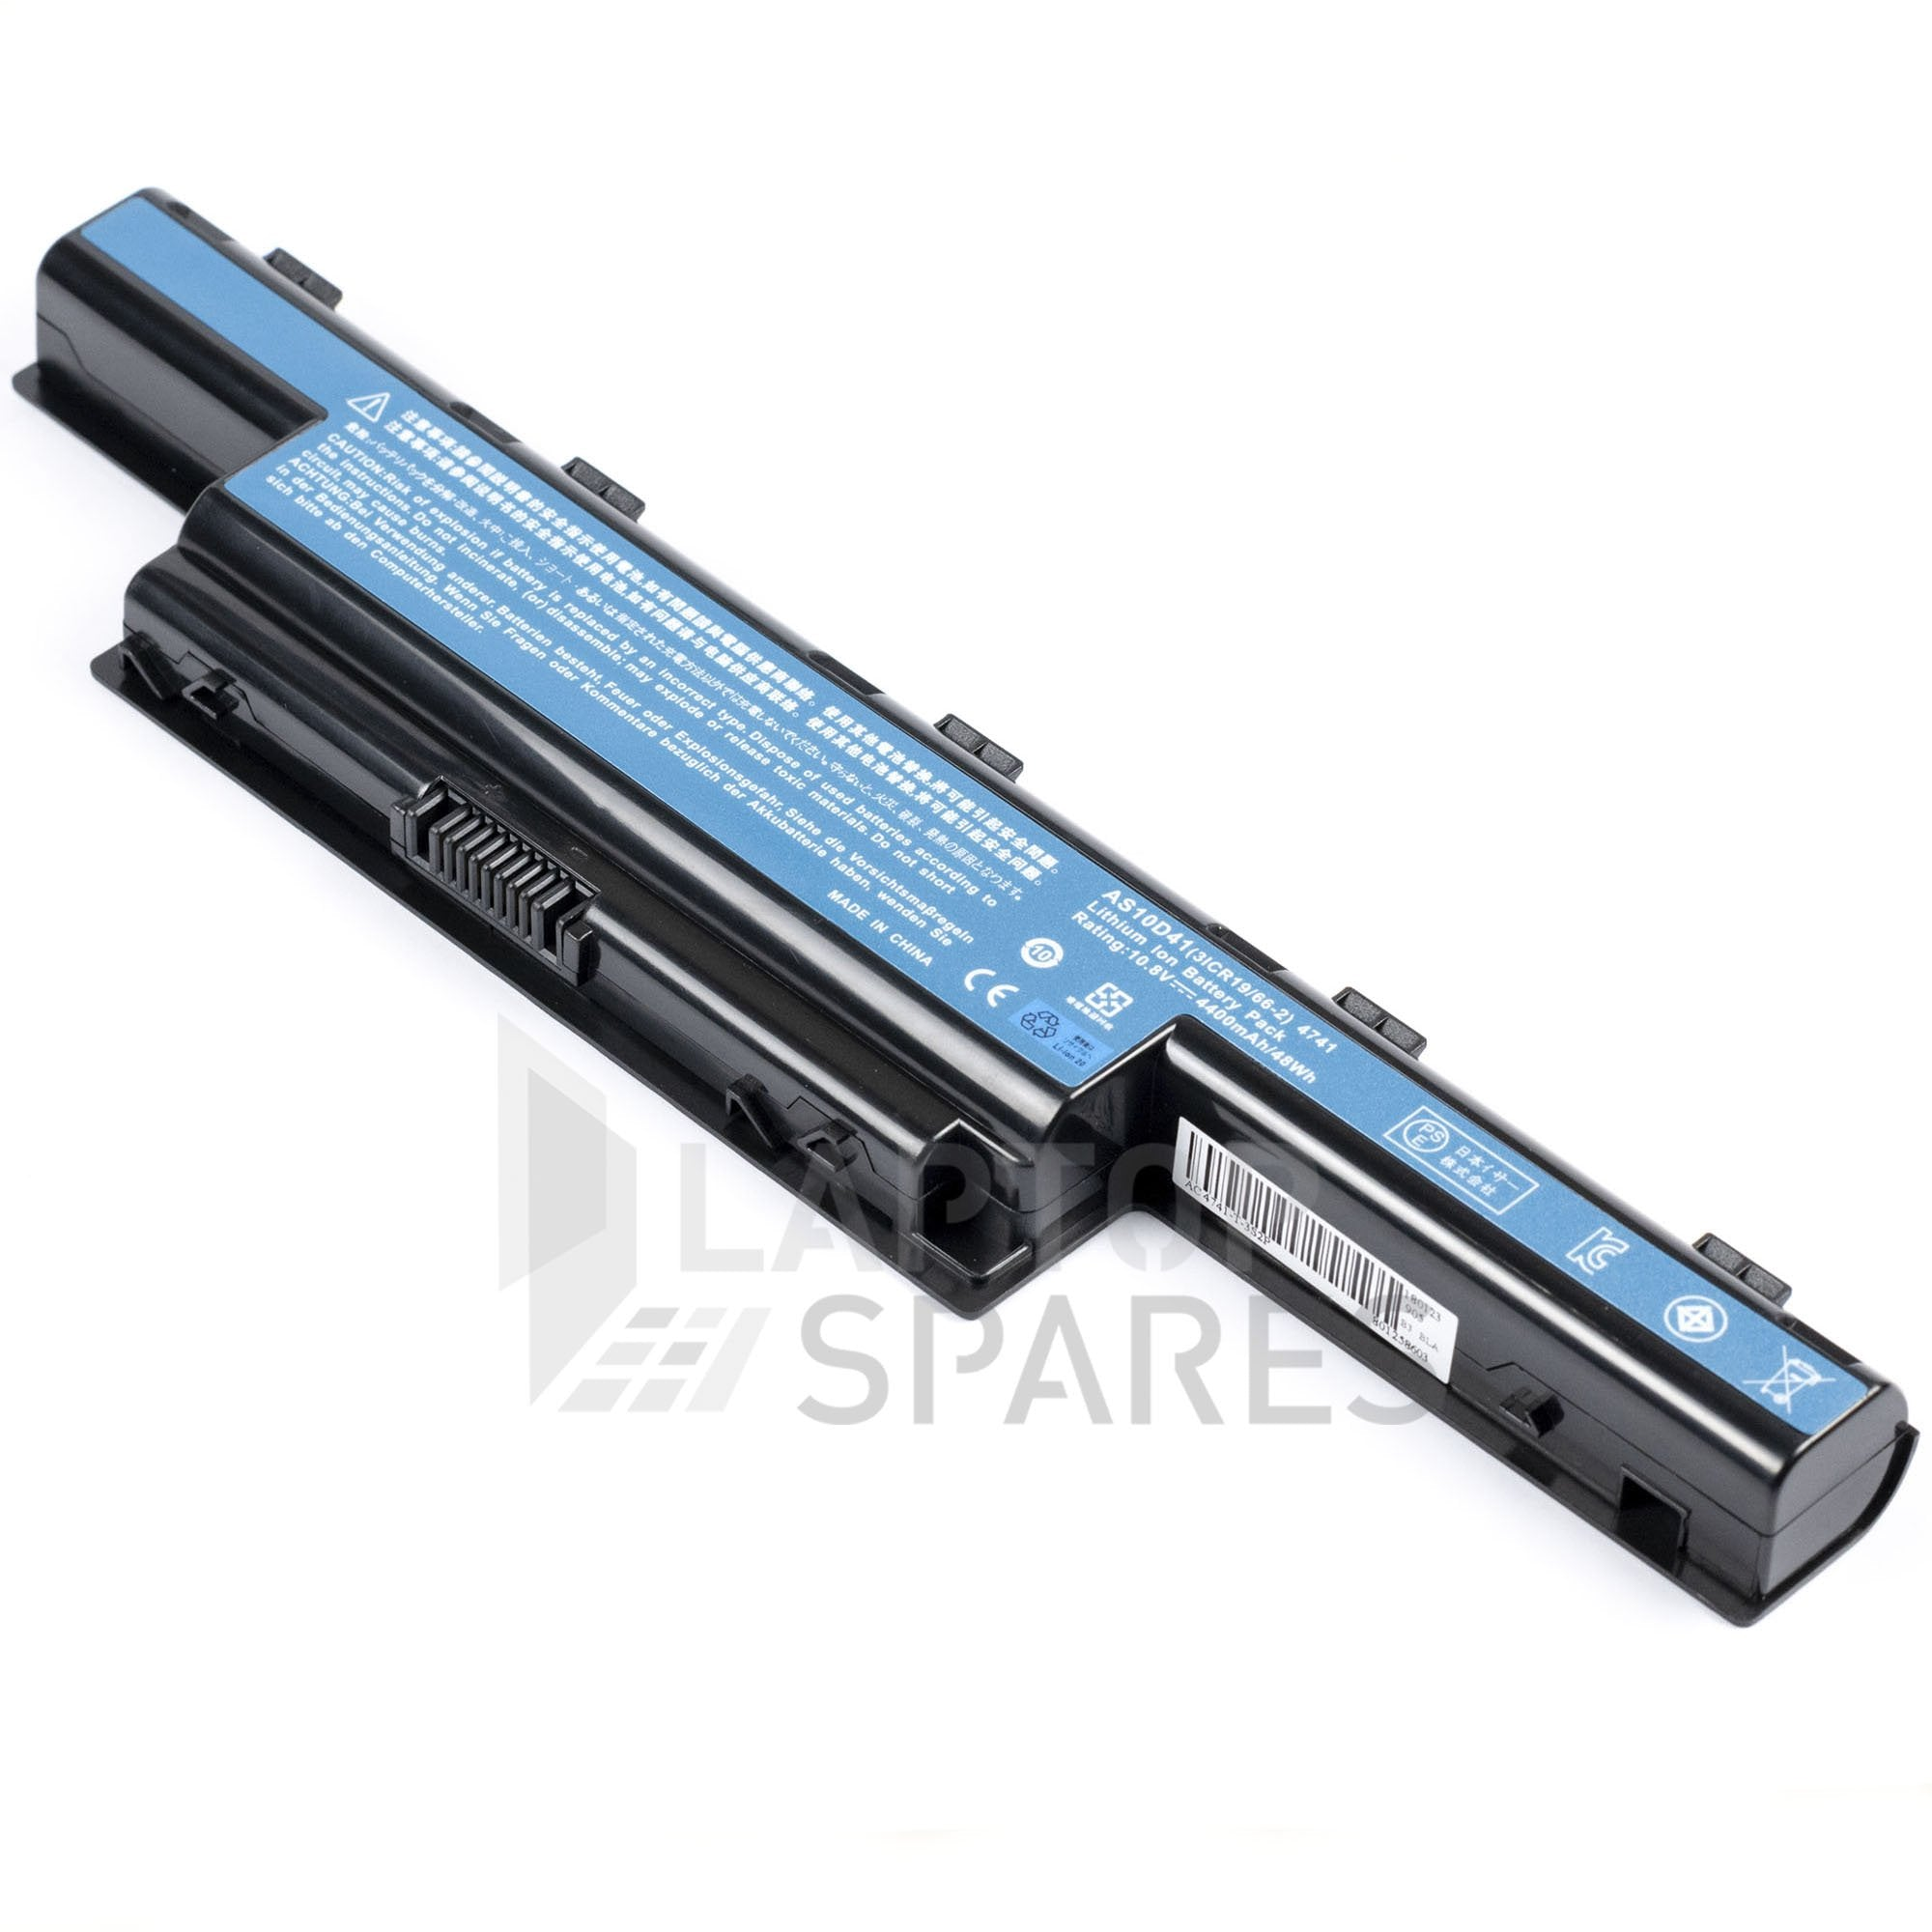 Acer eMachine E440 E442 E529 4400mAh 6 Cell Battery